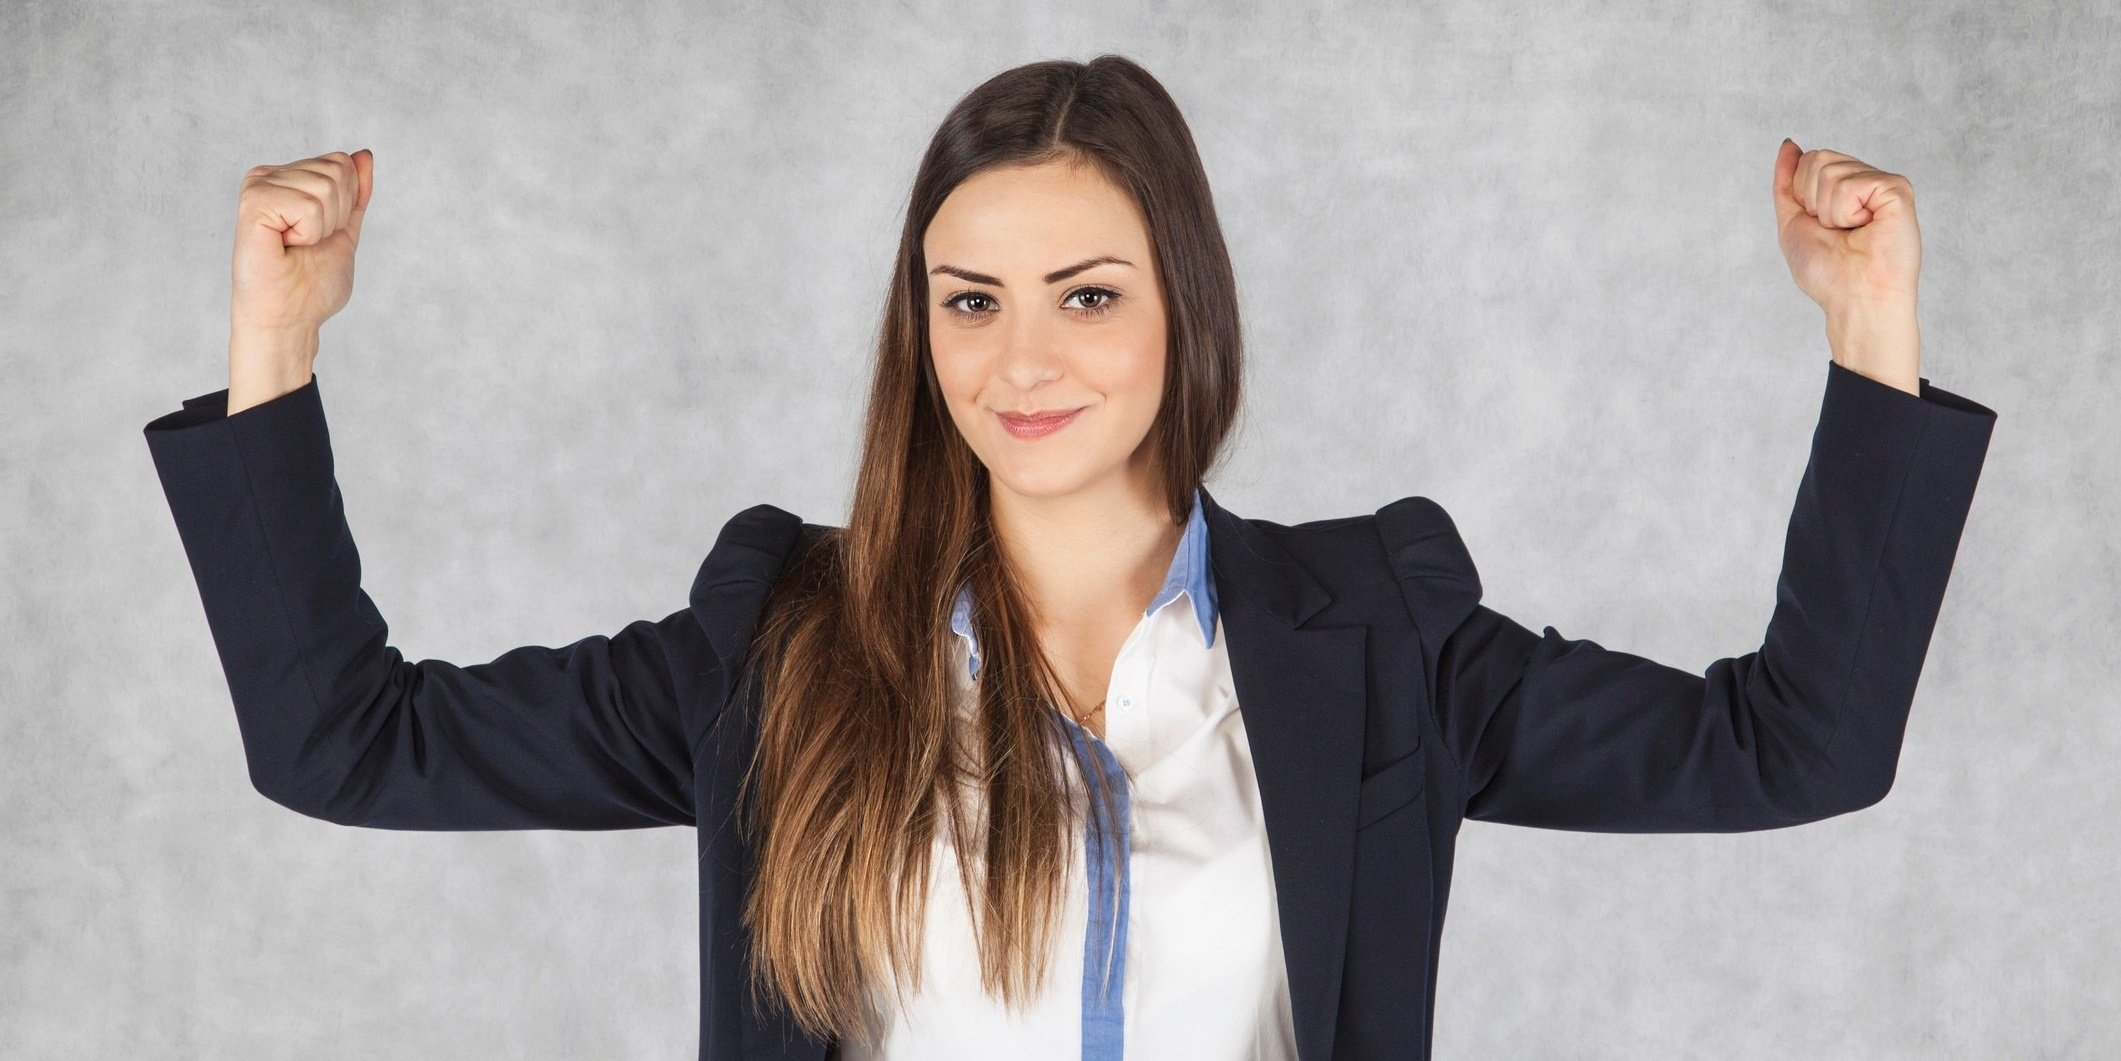 set new sales hire up for success